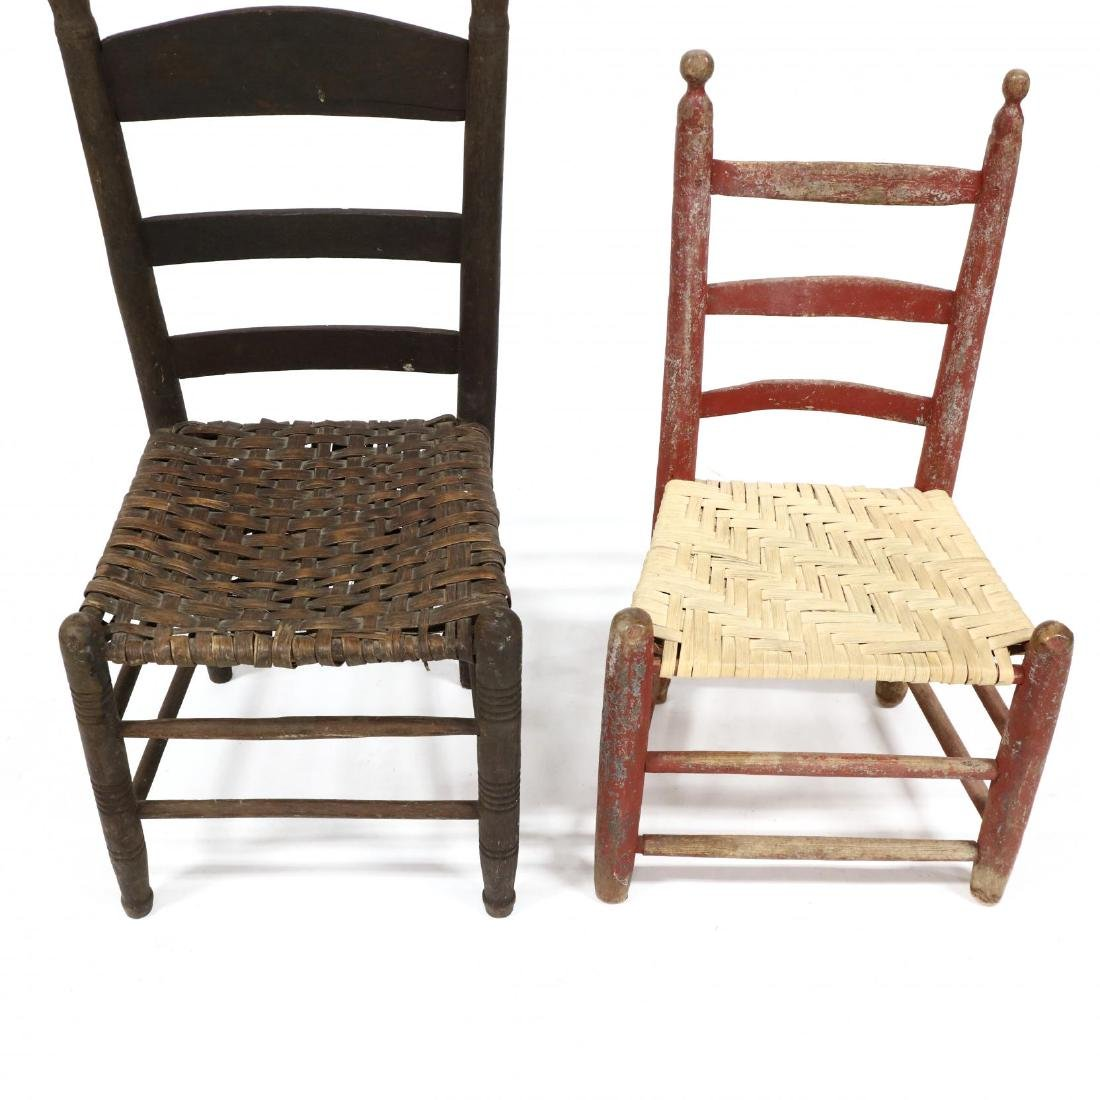 Three Antique American Ladderback Chairs - 3